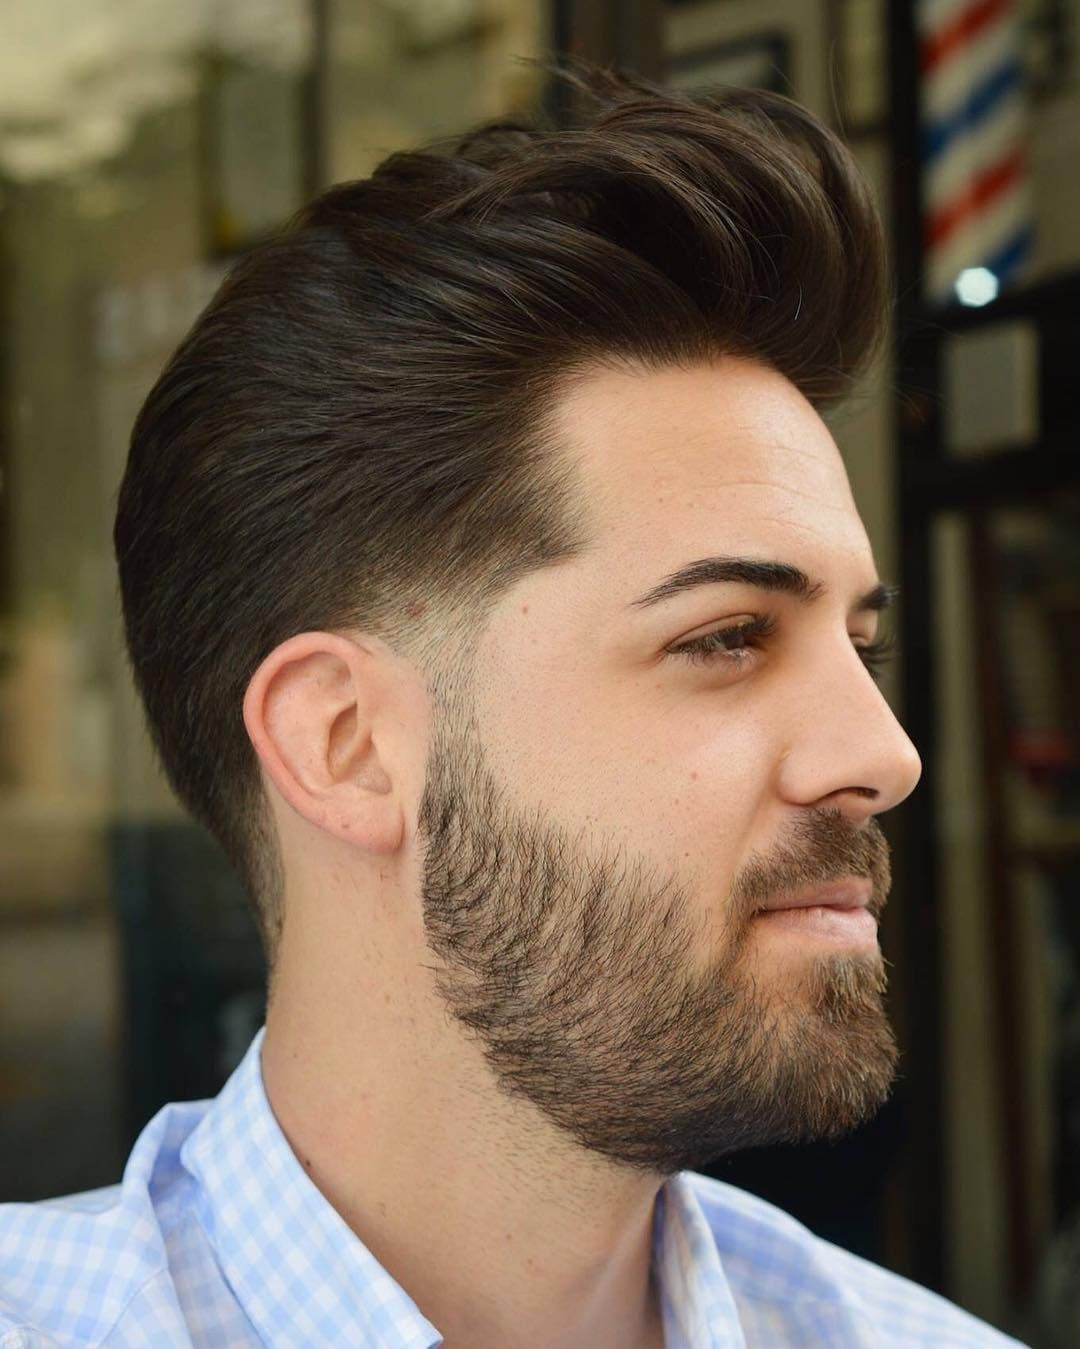 Finding A Trendy New Hairstyle For Men Cool Hairstyles For Men Mens Hairstyles Short Mens Hairstyles Undercut